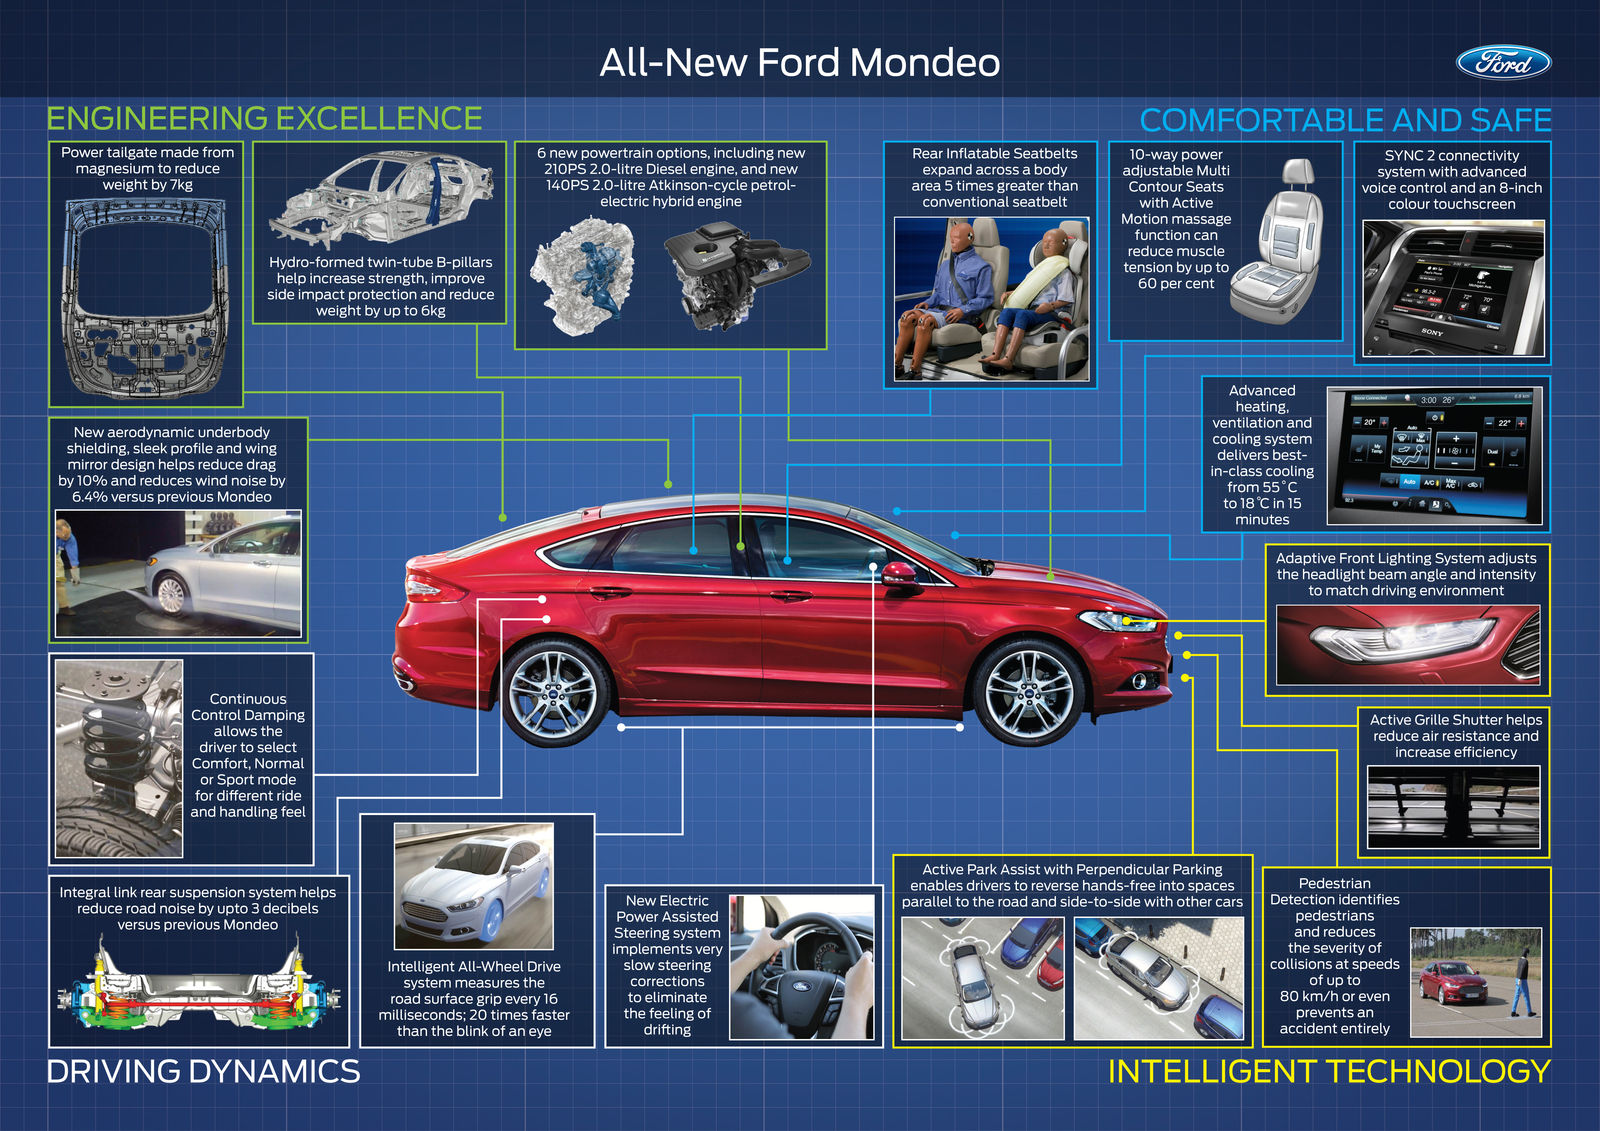 2015 Ford Mondeo Technology Infographic on electric car infographic